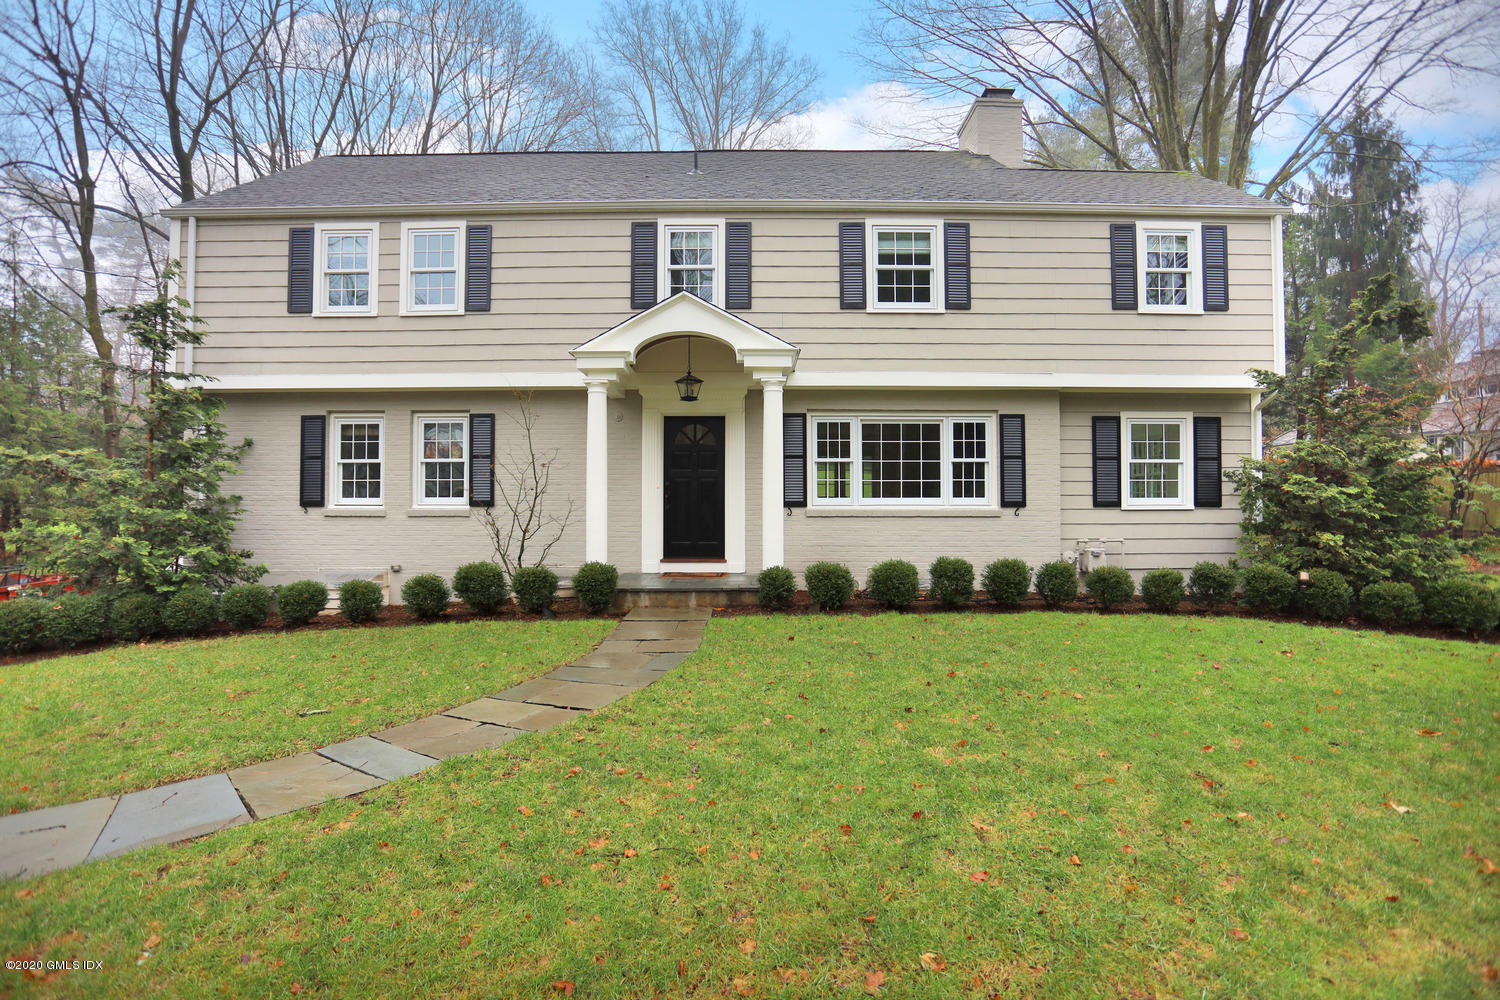 17 Hillside Drive,Greenwich,Connecticut 06830,5 Bedrooms Bedrooms,4 BathroomsBathrooms,Single family,Hillside,108558